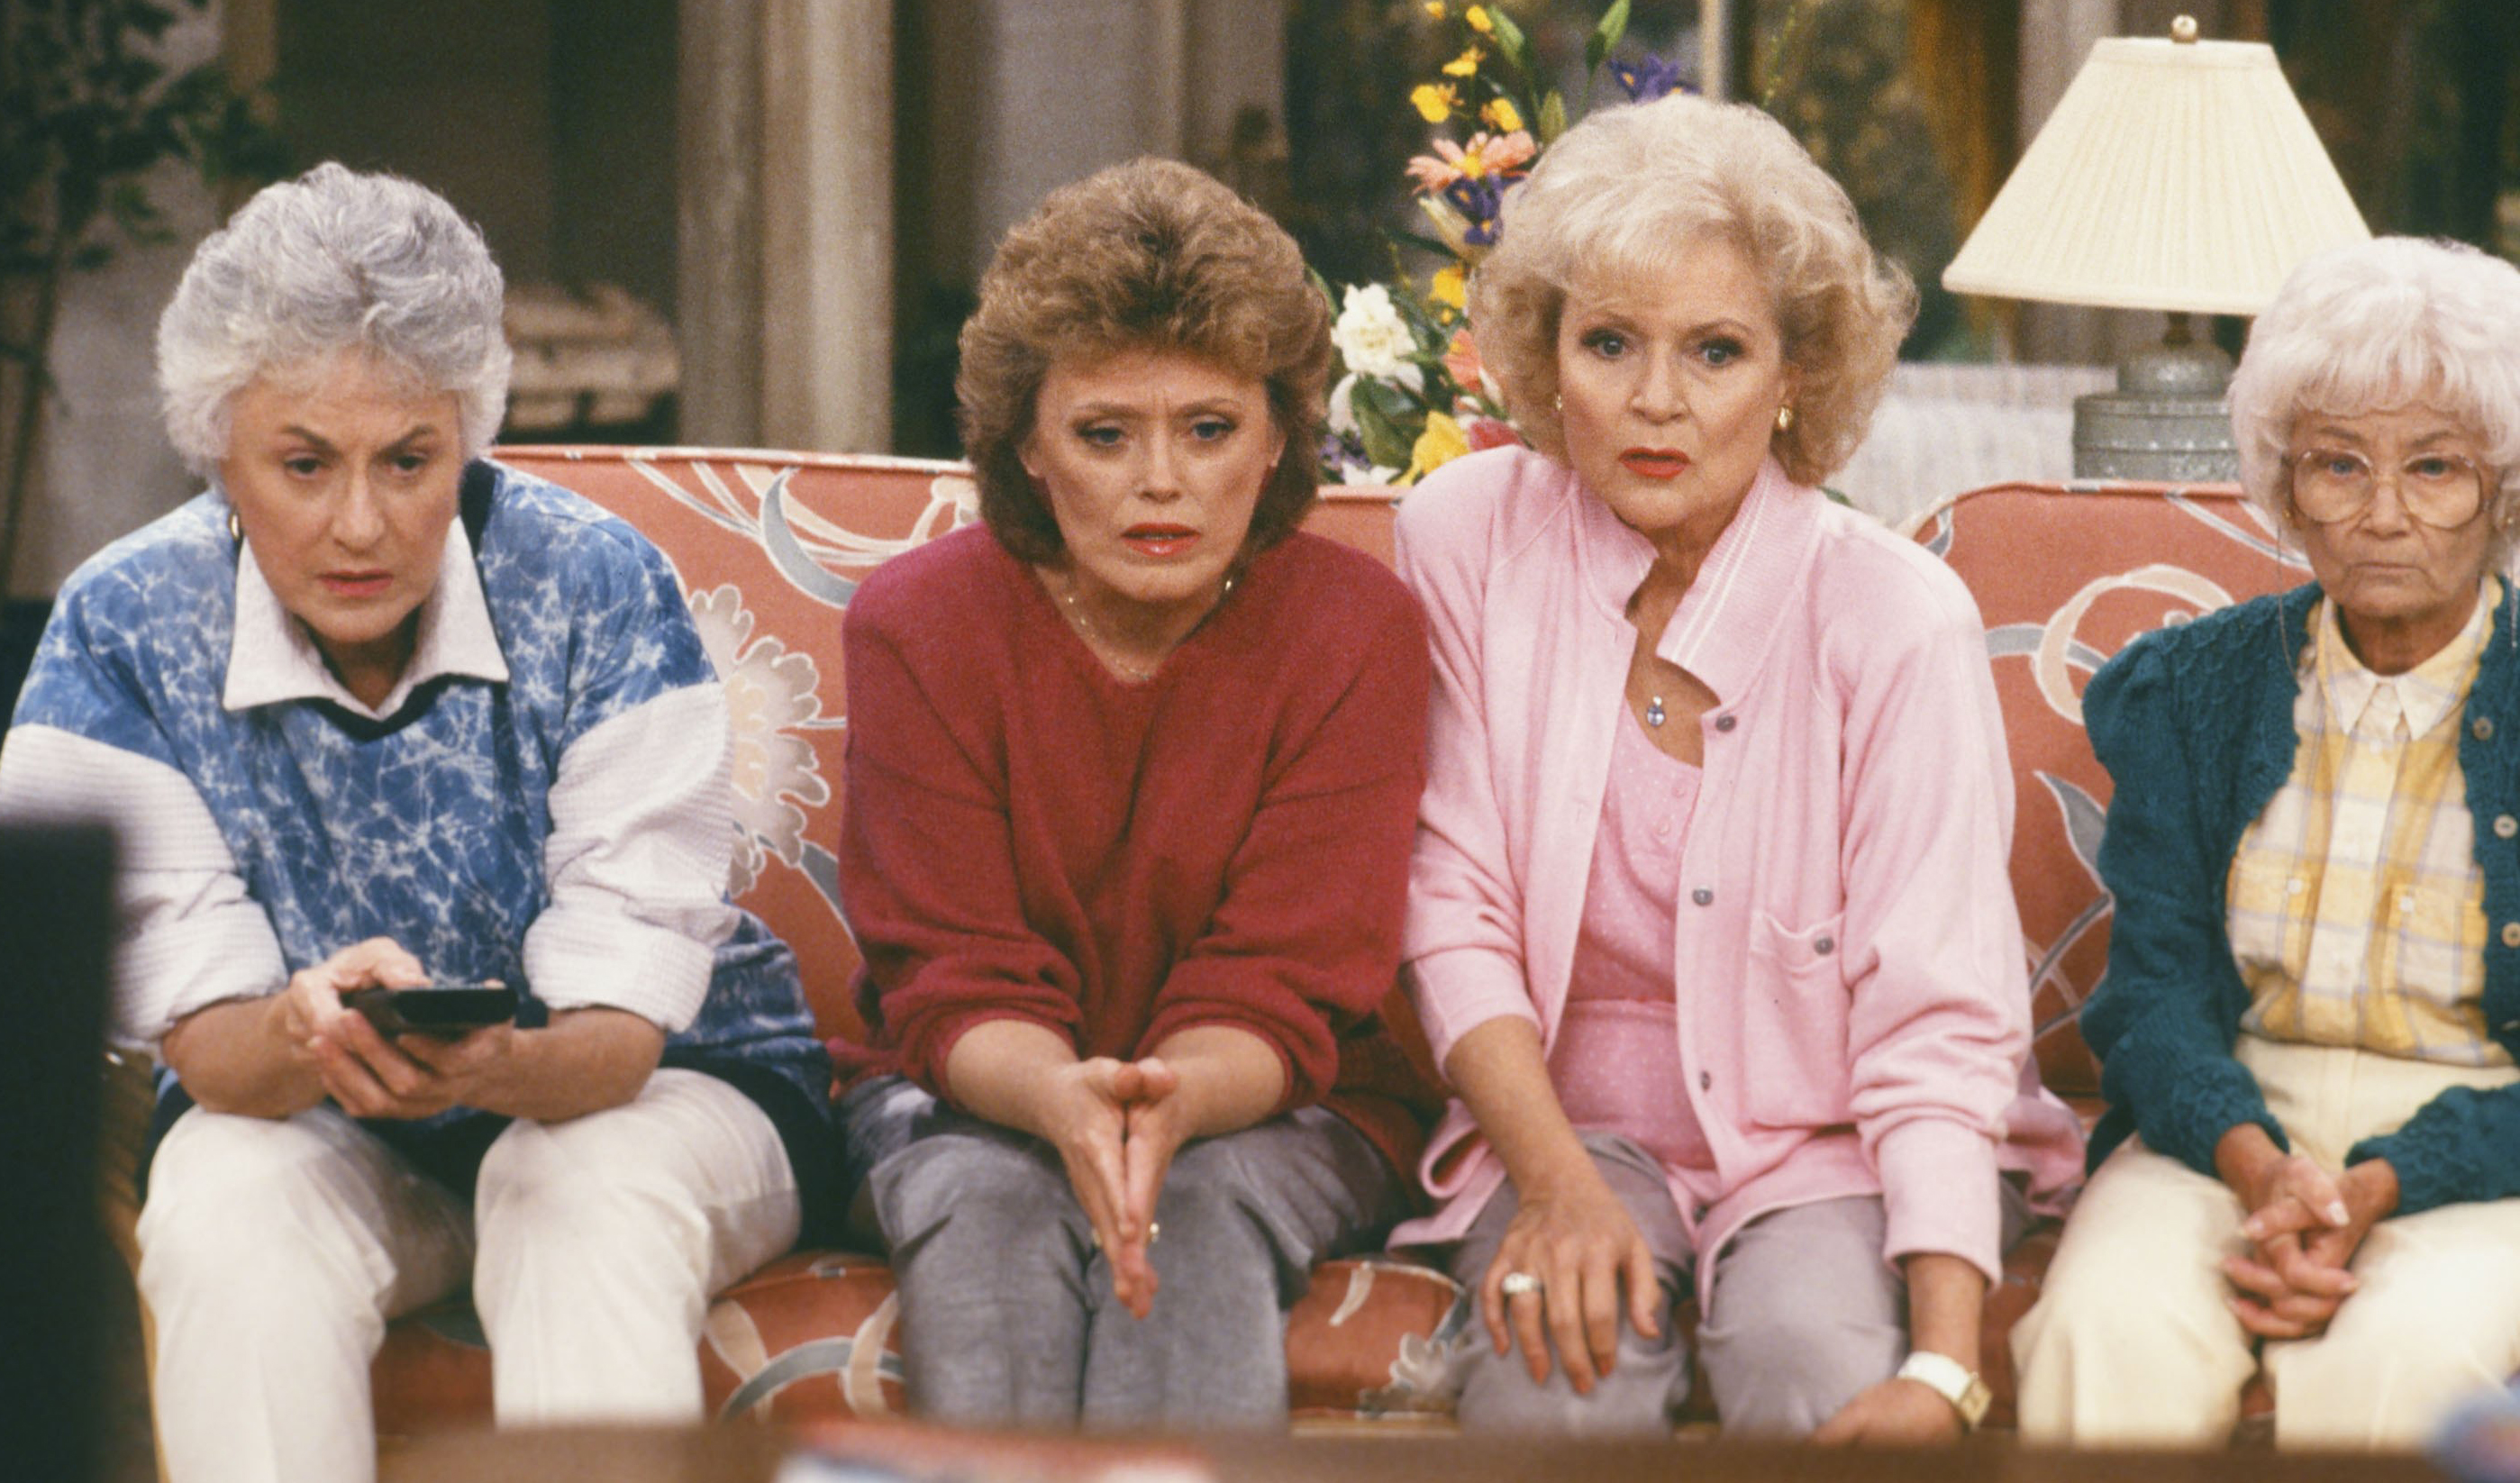 golden girls | golden girls themed cruise | themed cruise | cruise | vacation | travel